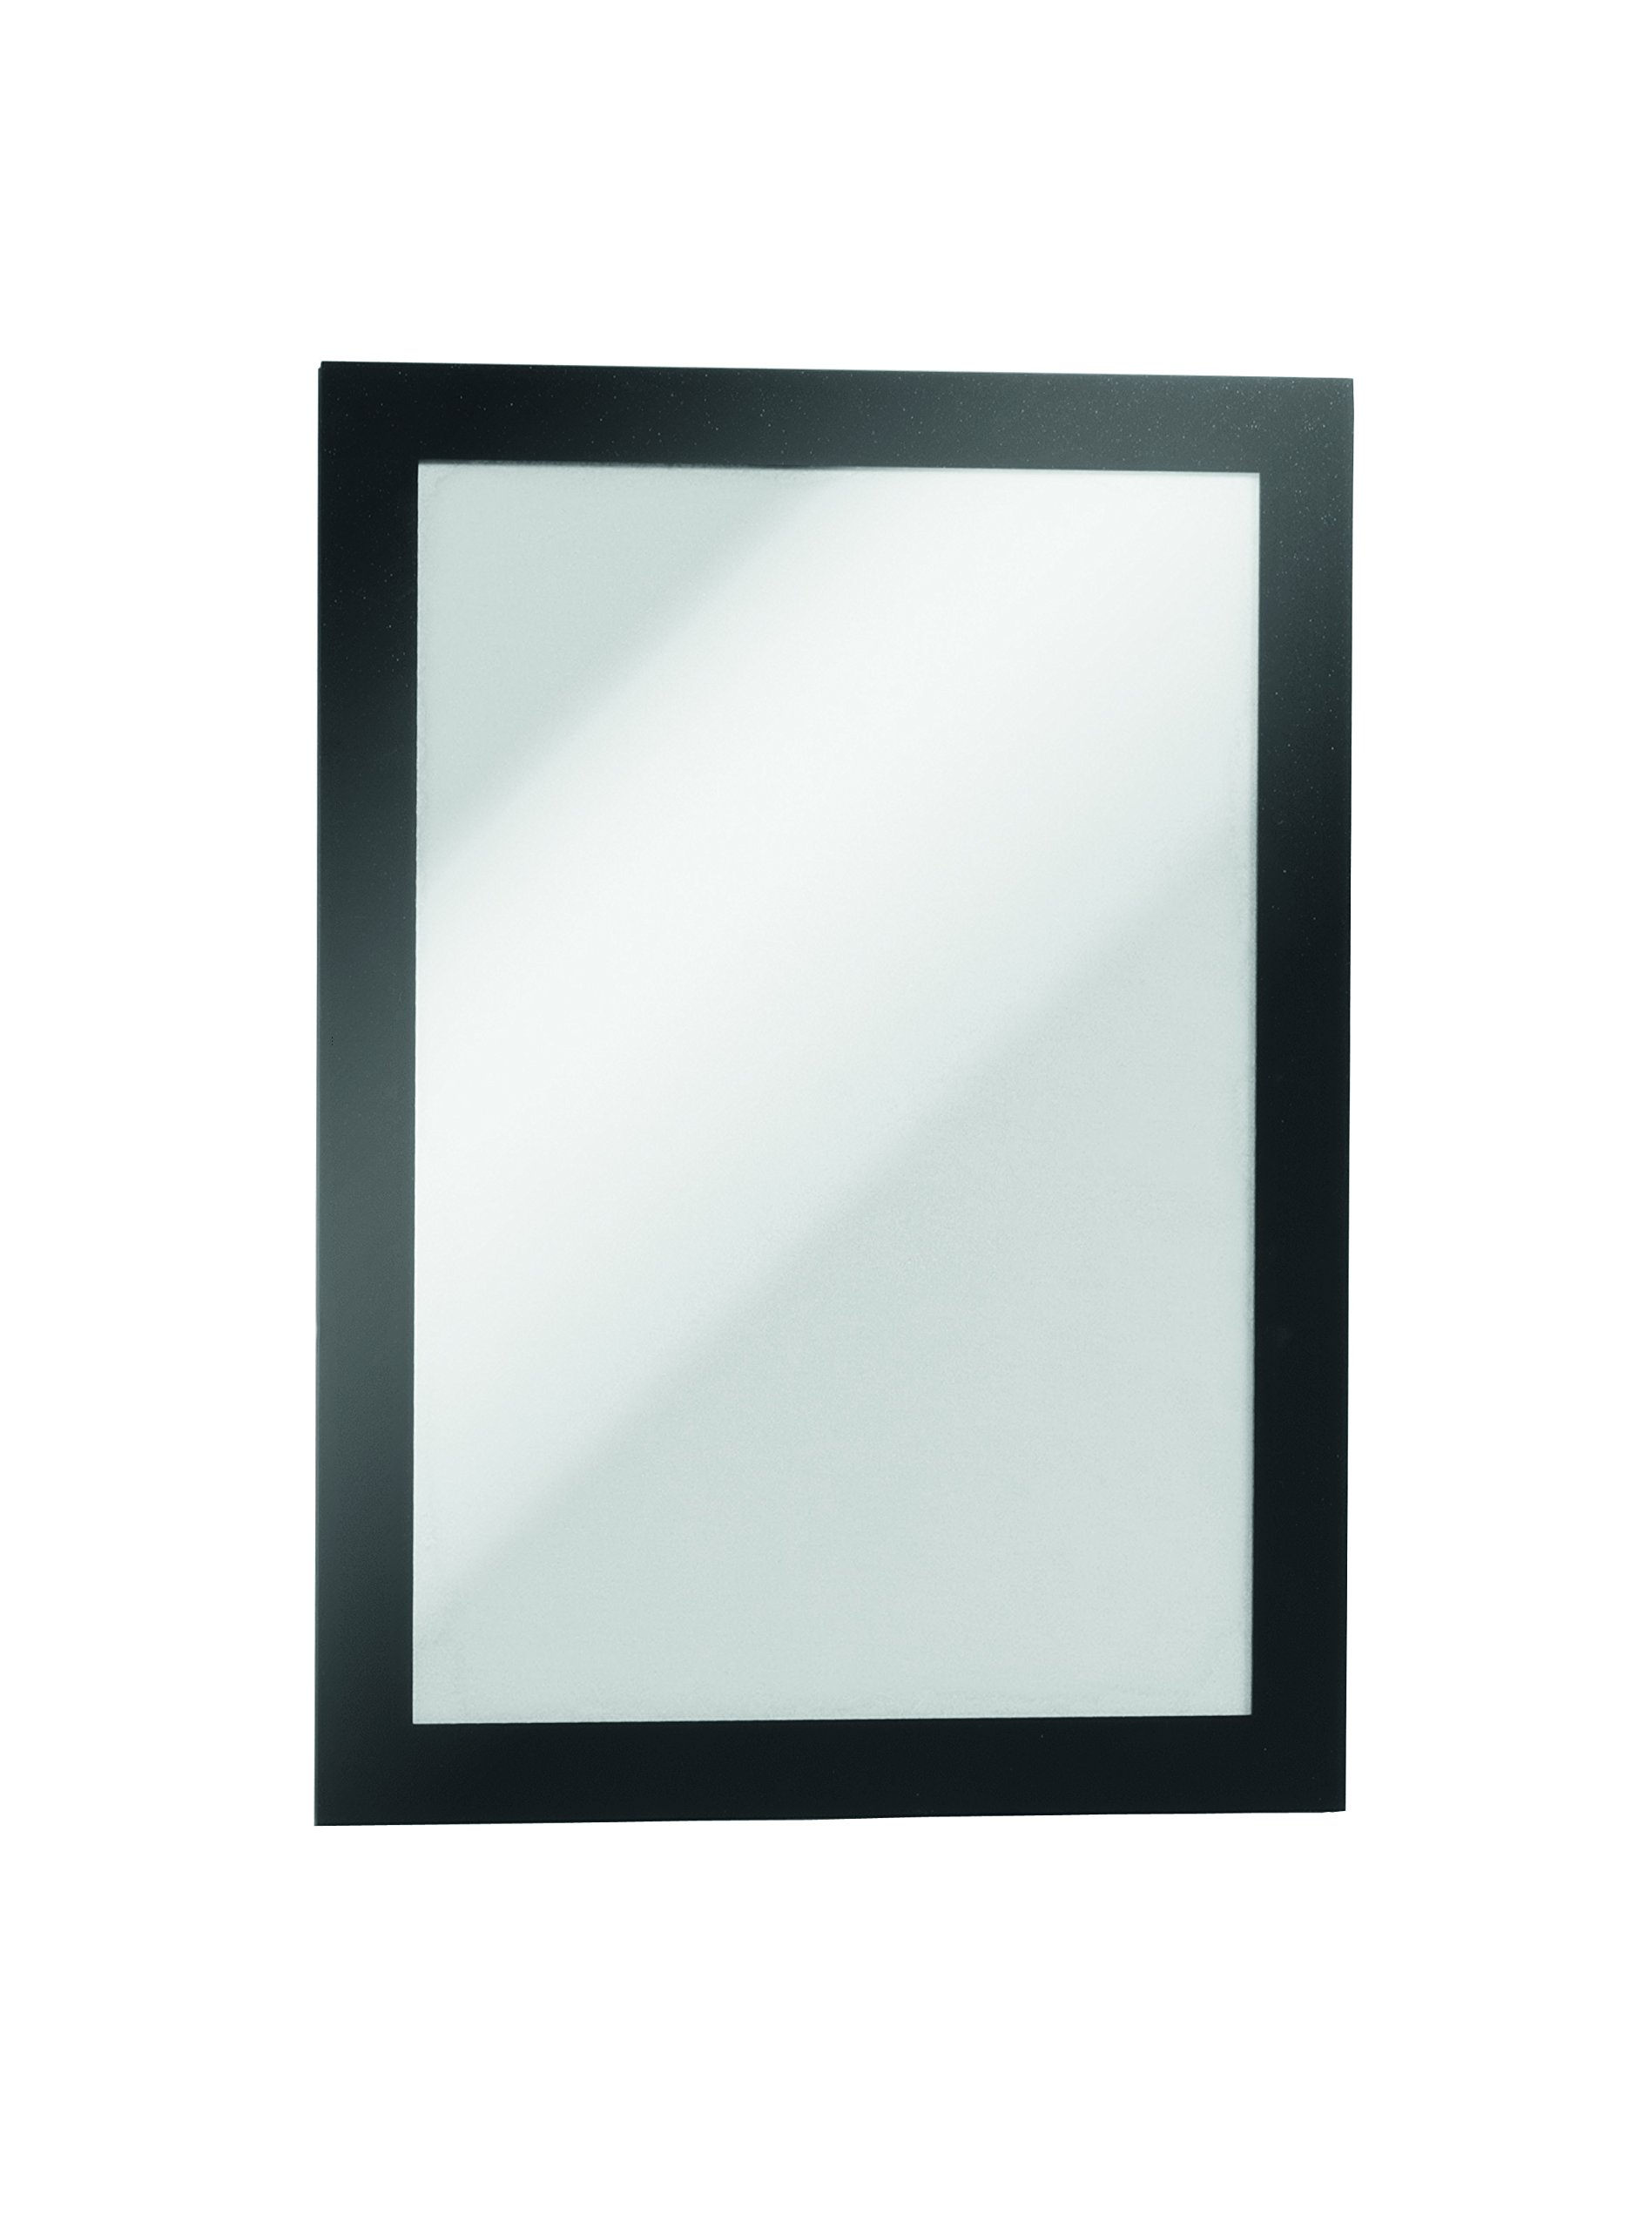 Durable 494701 Info Frame Duraframe Magnetic (A5, Magnetic Frame for Metallic Surfaces) 5 Pieces Black